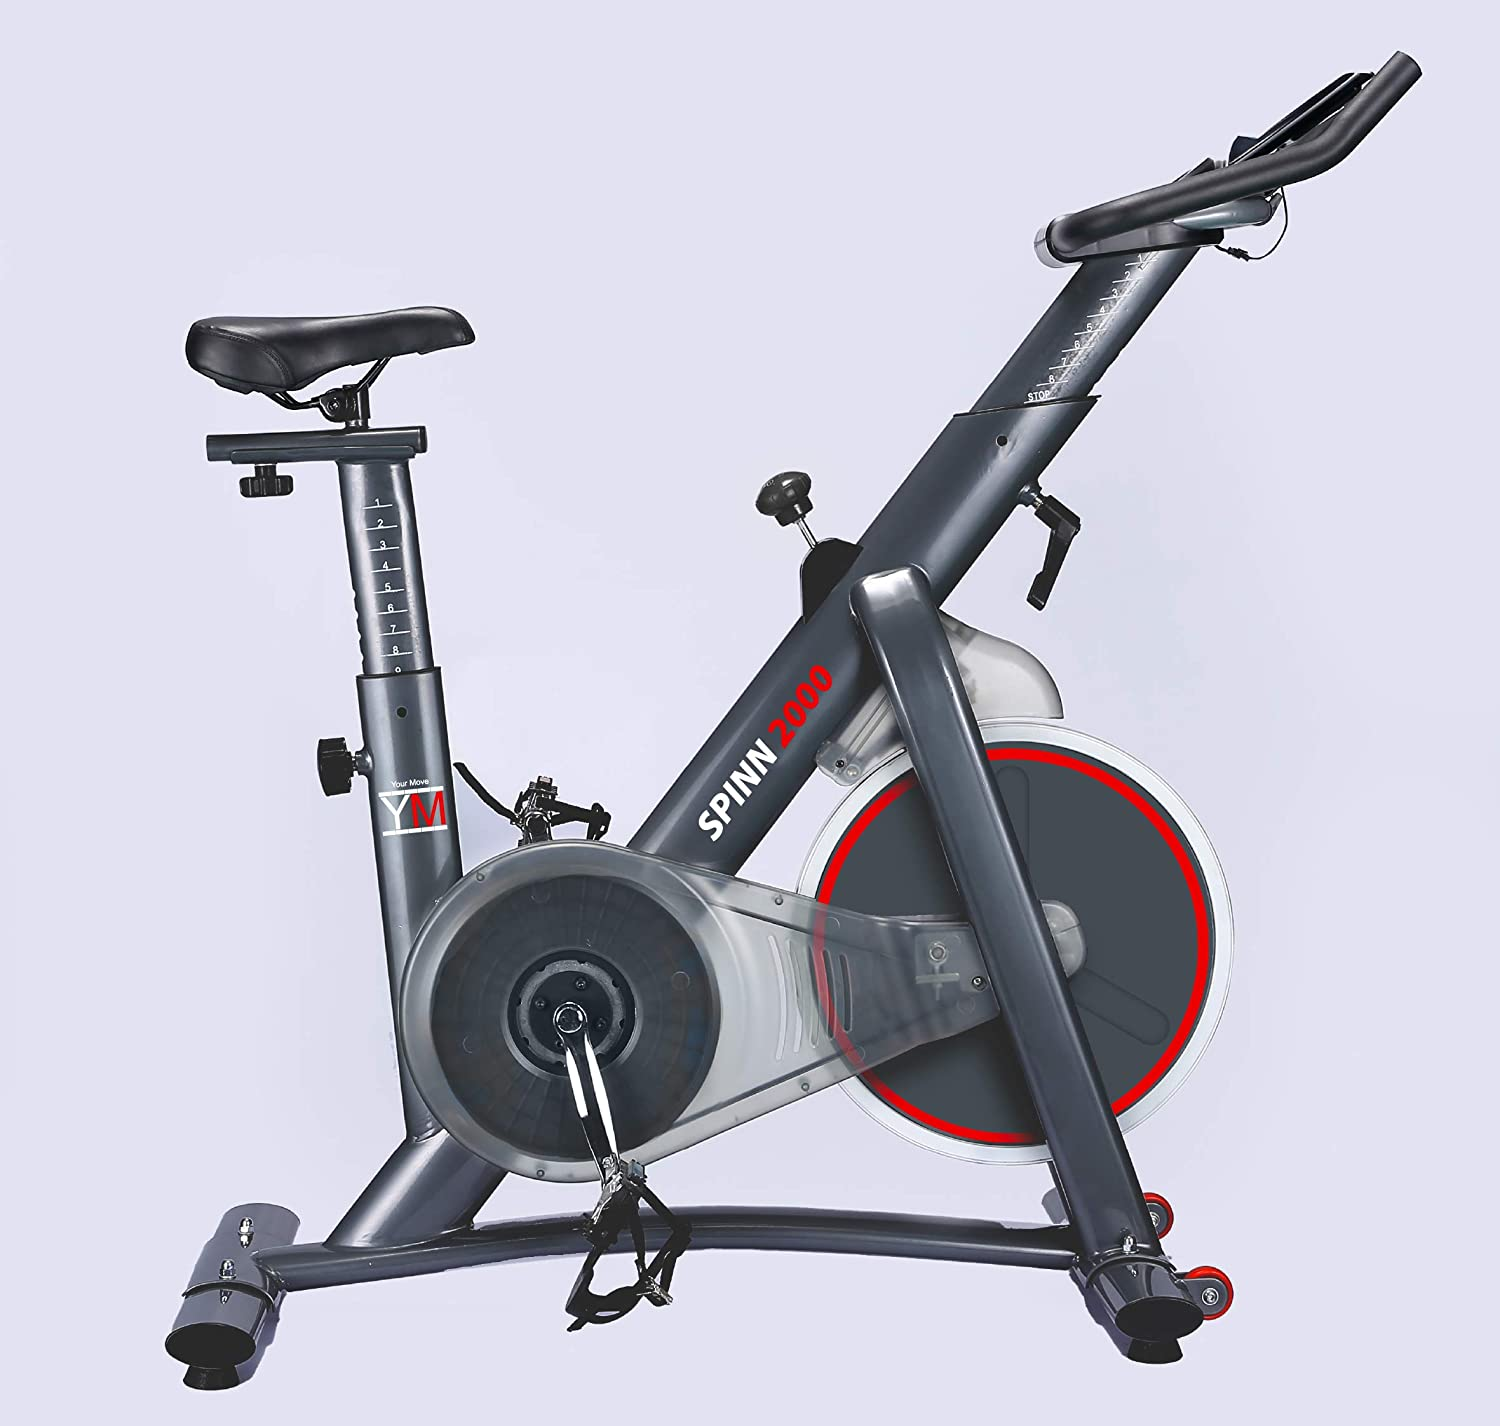 Bicicleta de spinning - Bike Your Move Cardio, bicicleta estática ...